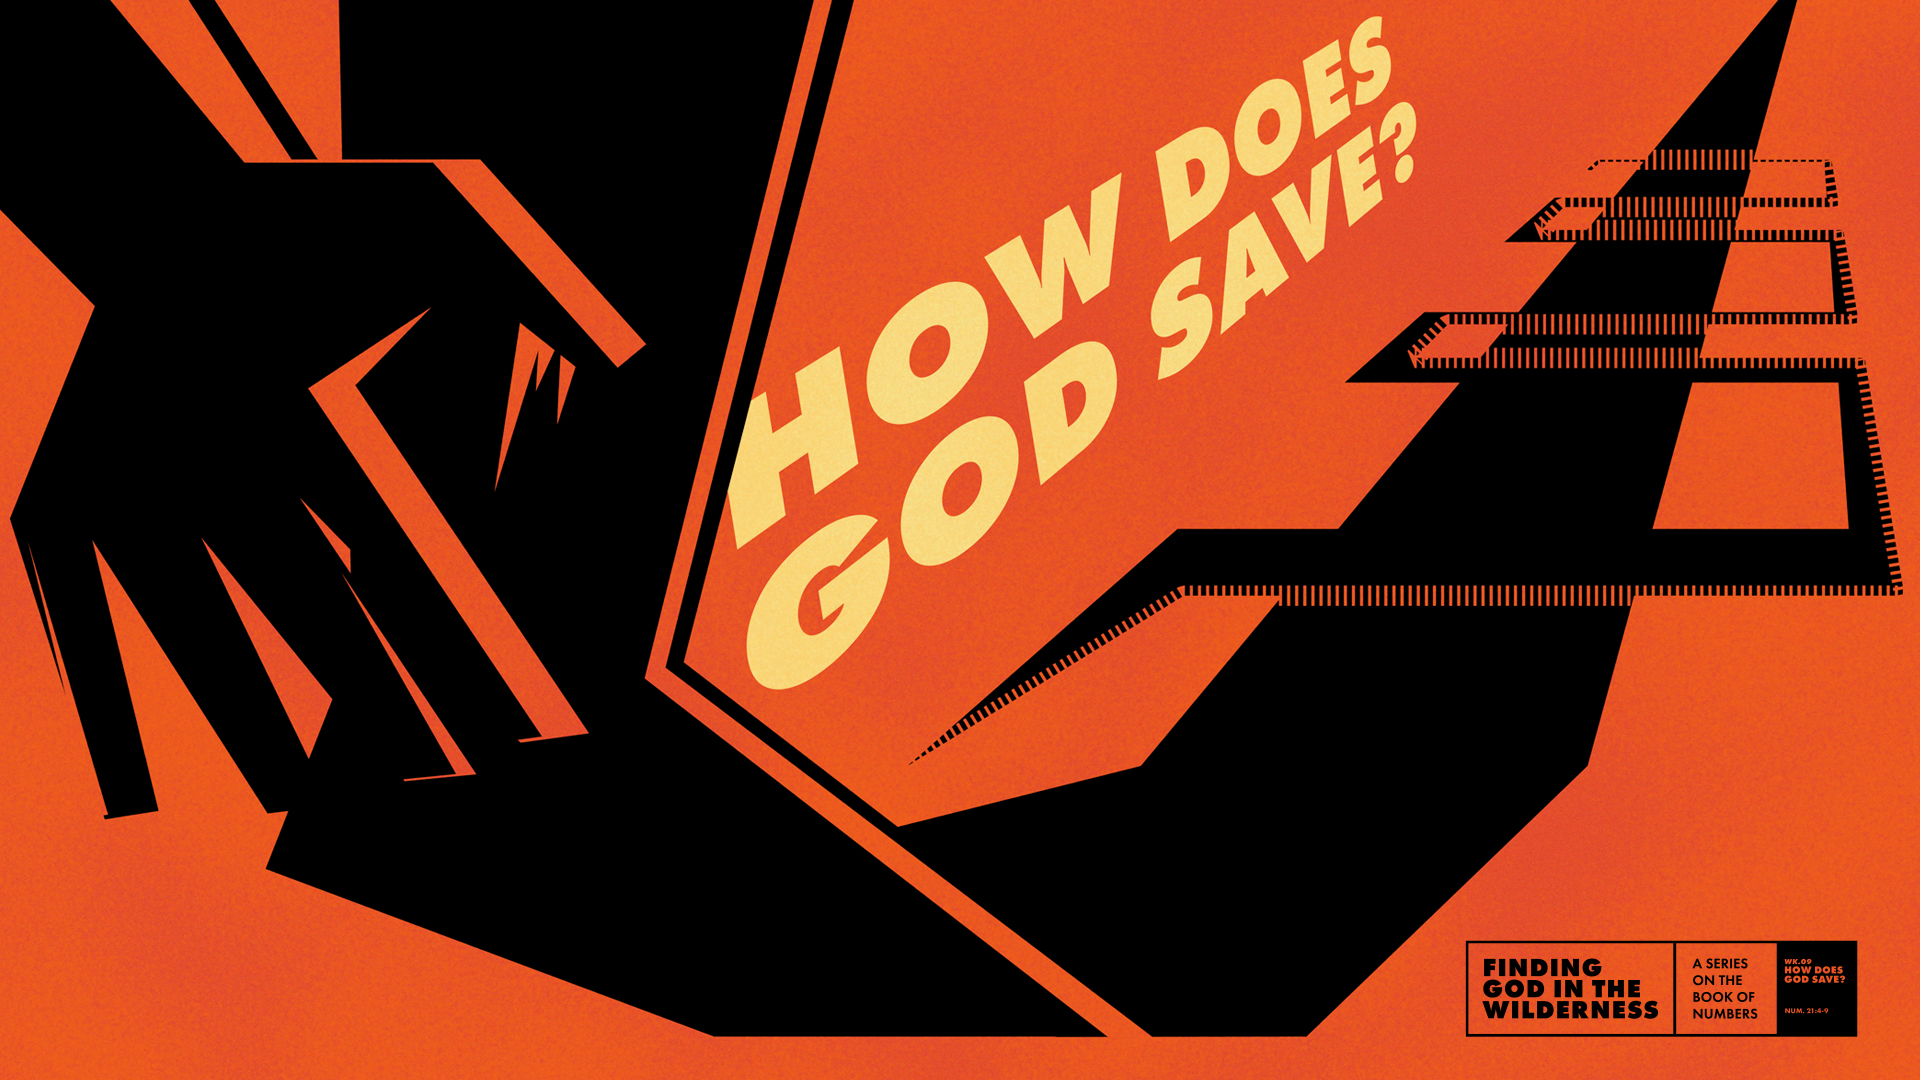 How Does God Save?